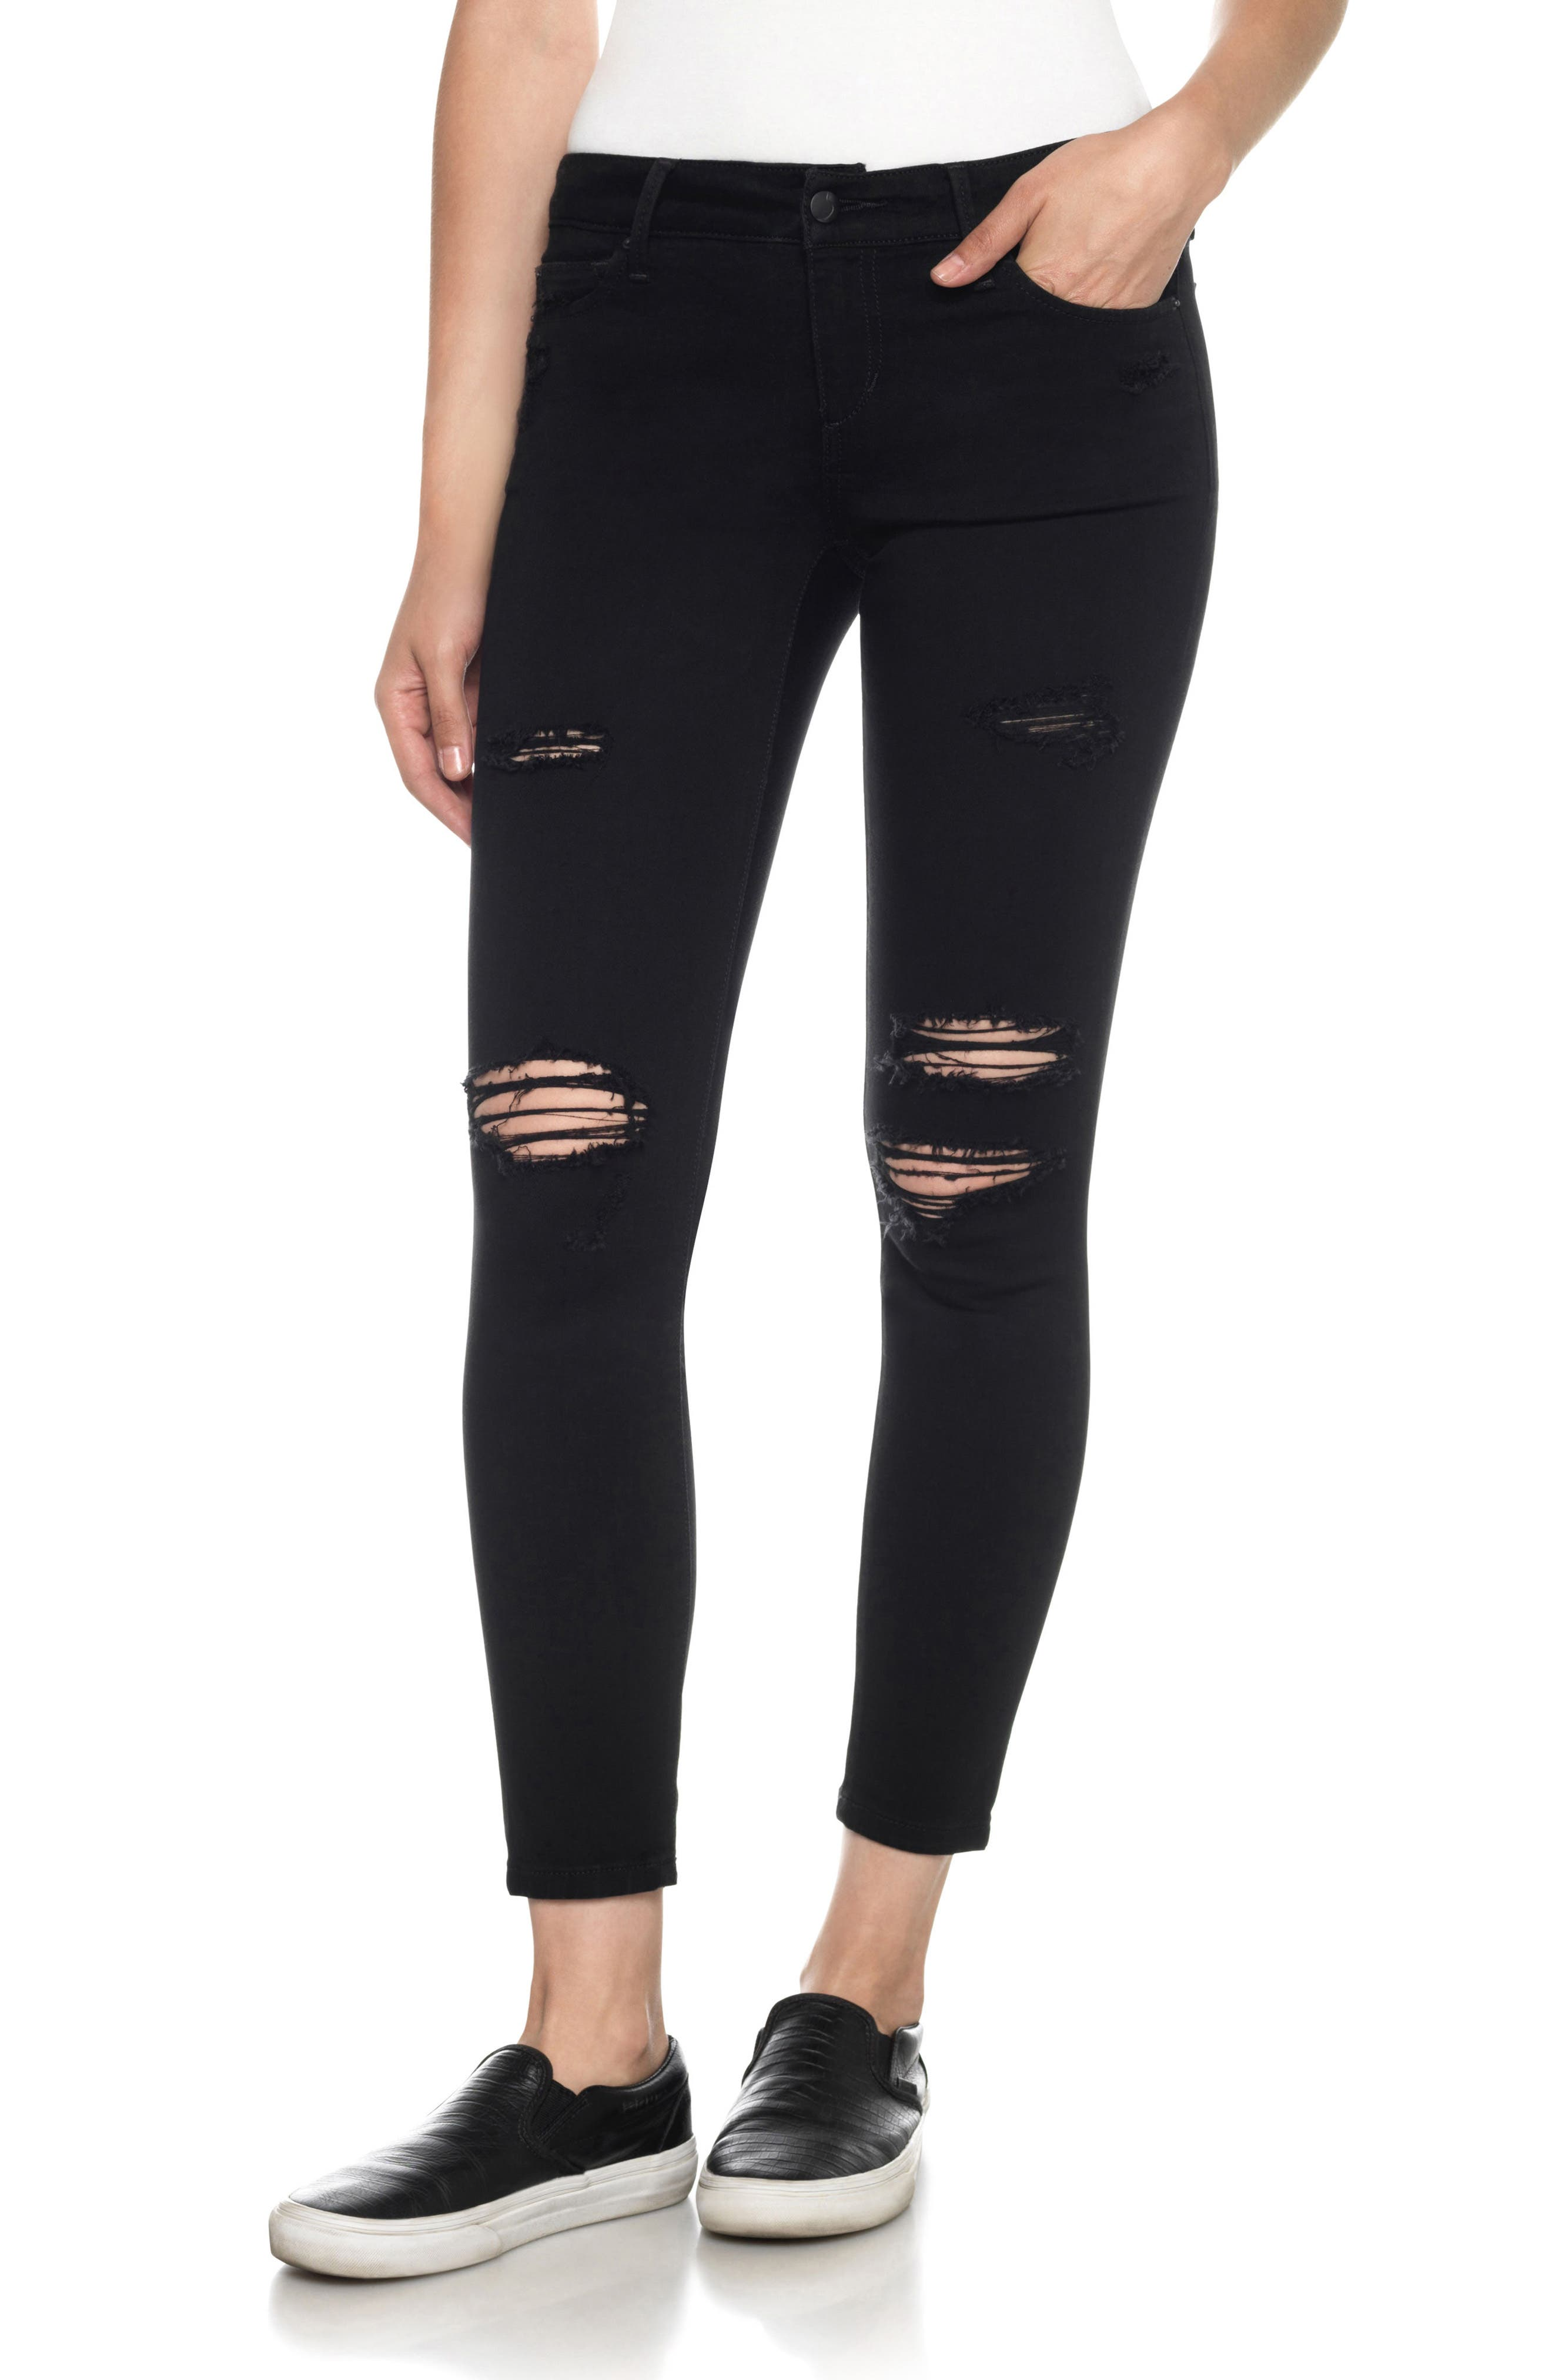 JOE'S Flawless - Icon Ankle Skinny Jeans, Main, color, DANNEL